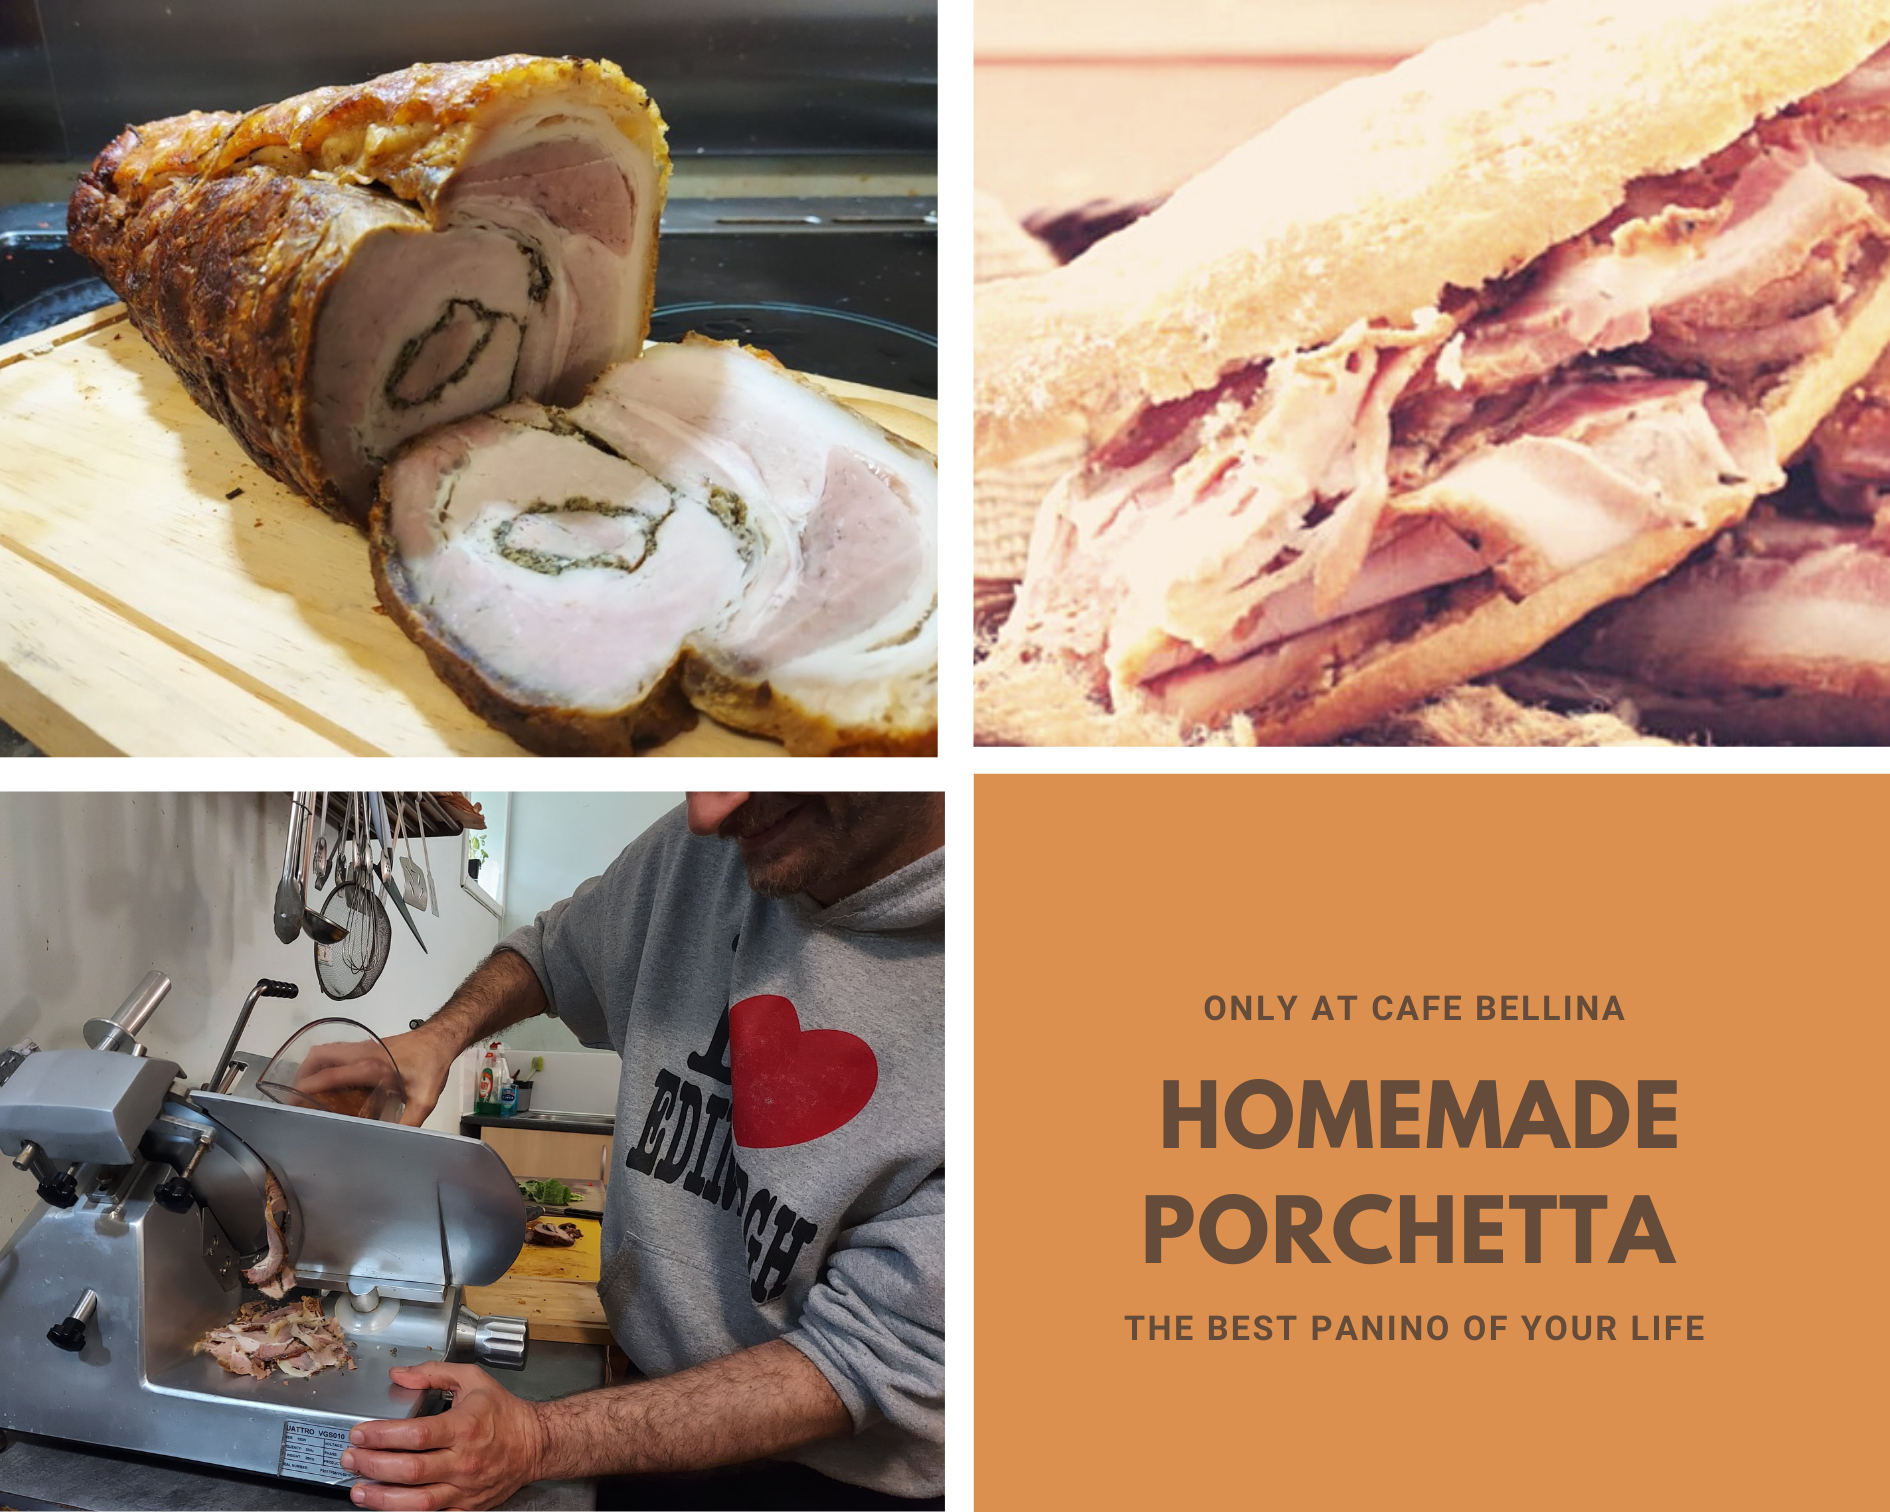 Homemade porchetta Panini